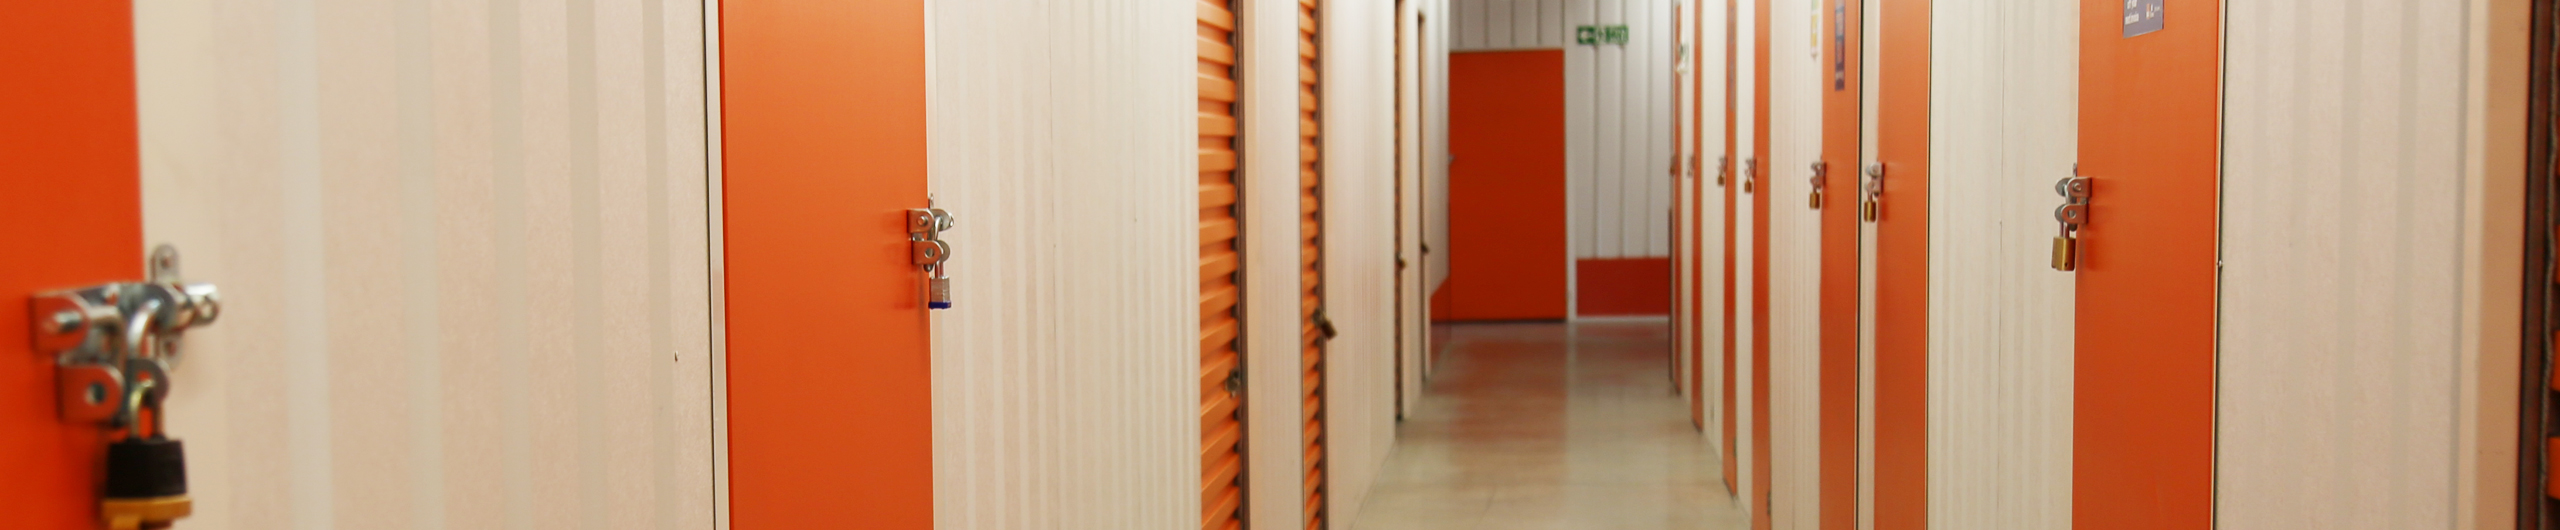 Self storage rooms at The Store Room